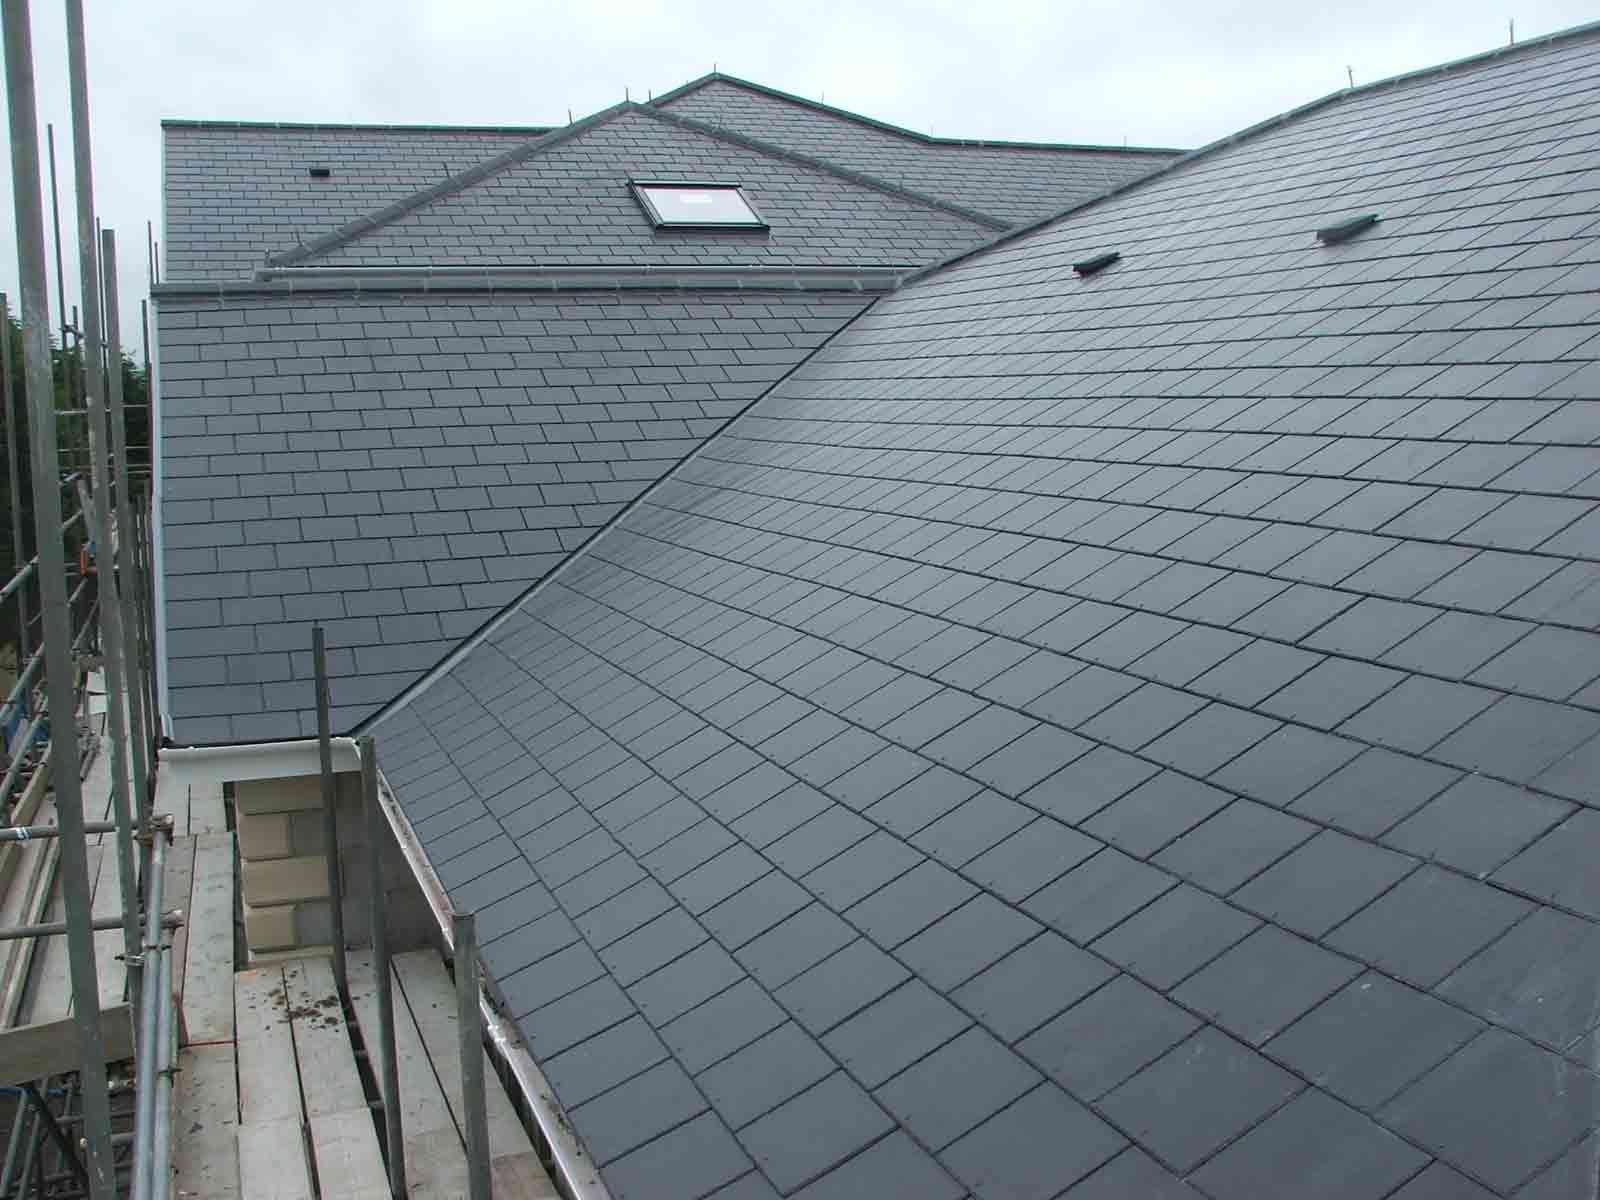 Pitched Roofing In Warrington Http Www Rooferinwarrington Co Uk The Warrington Roofing Company Local Roofer In Warrington Wa2 7ng